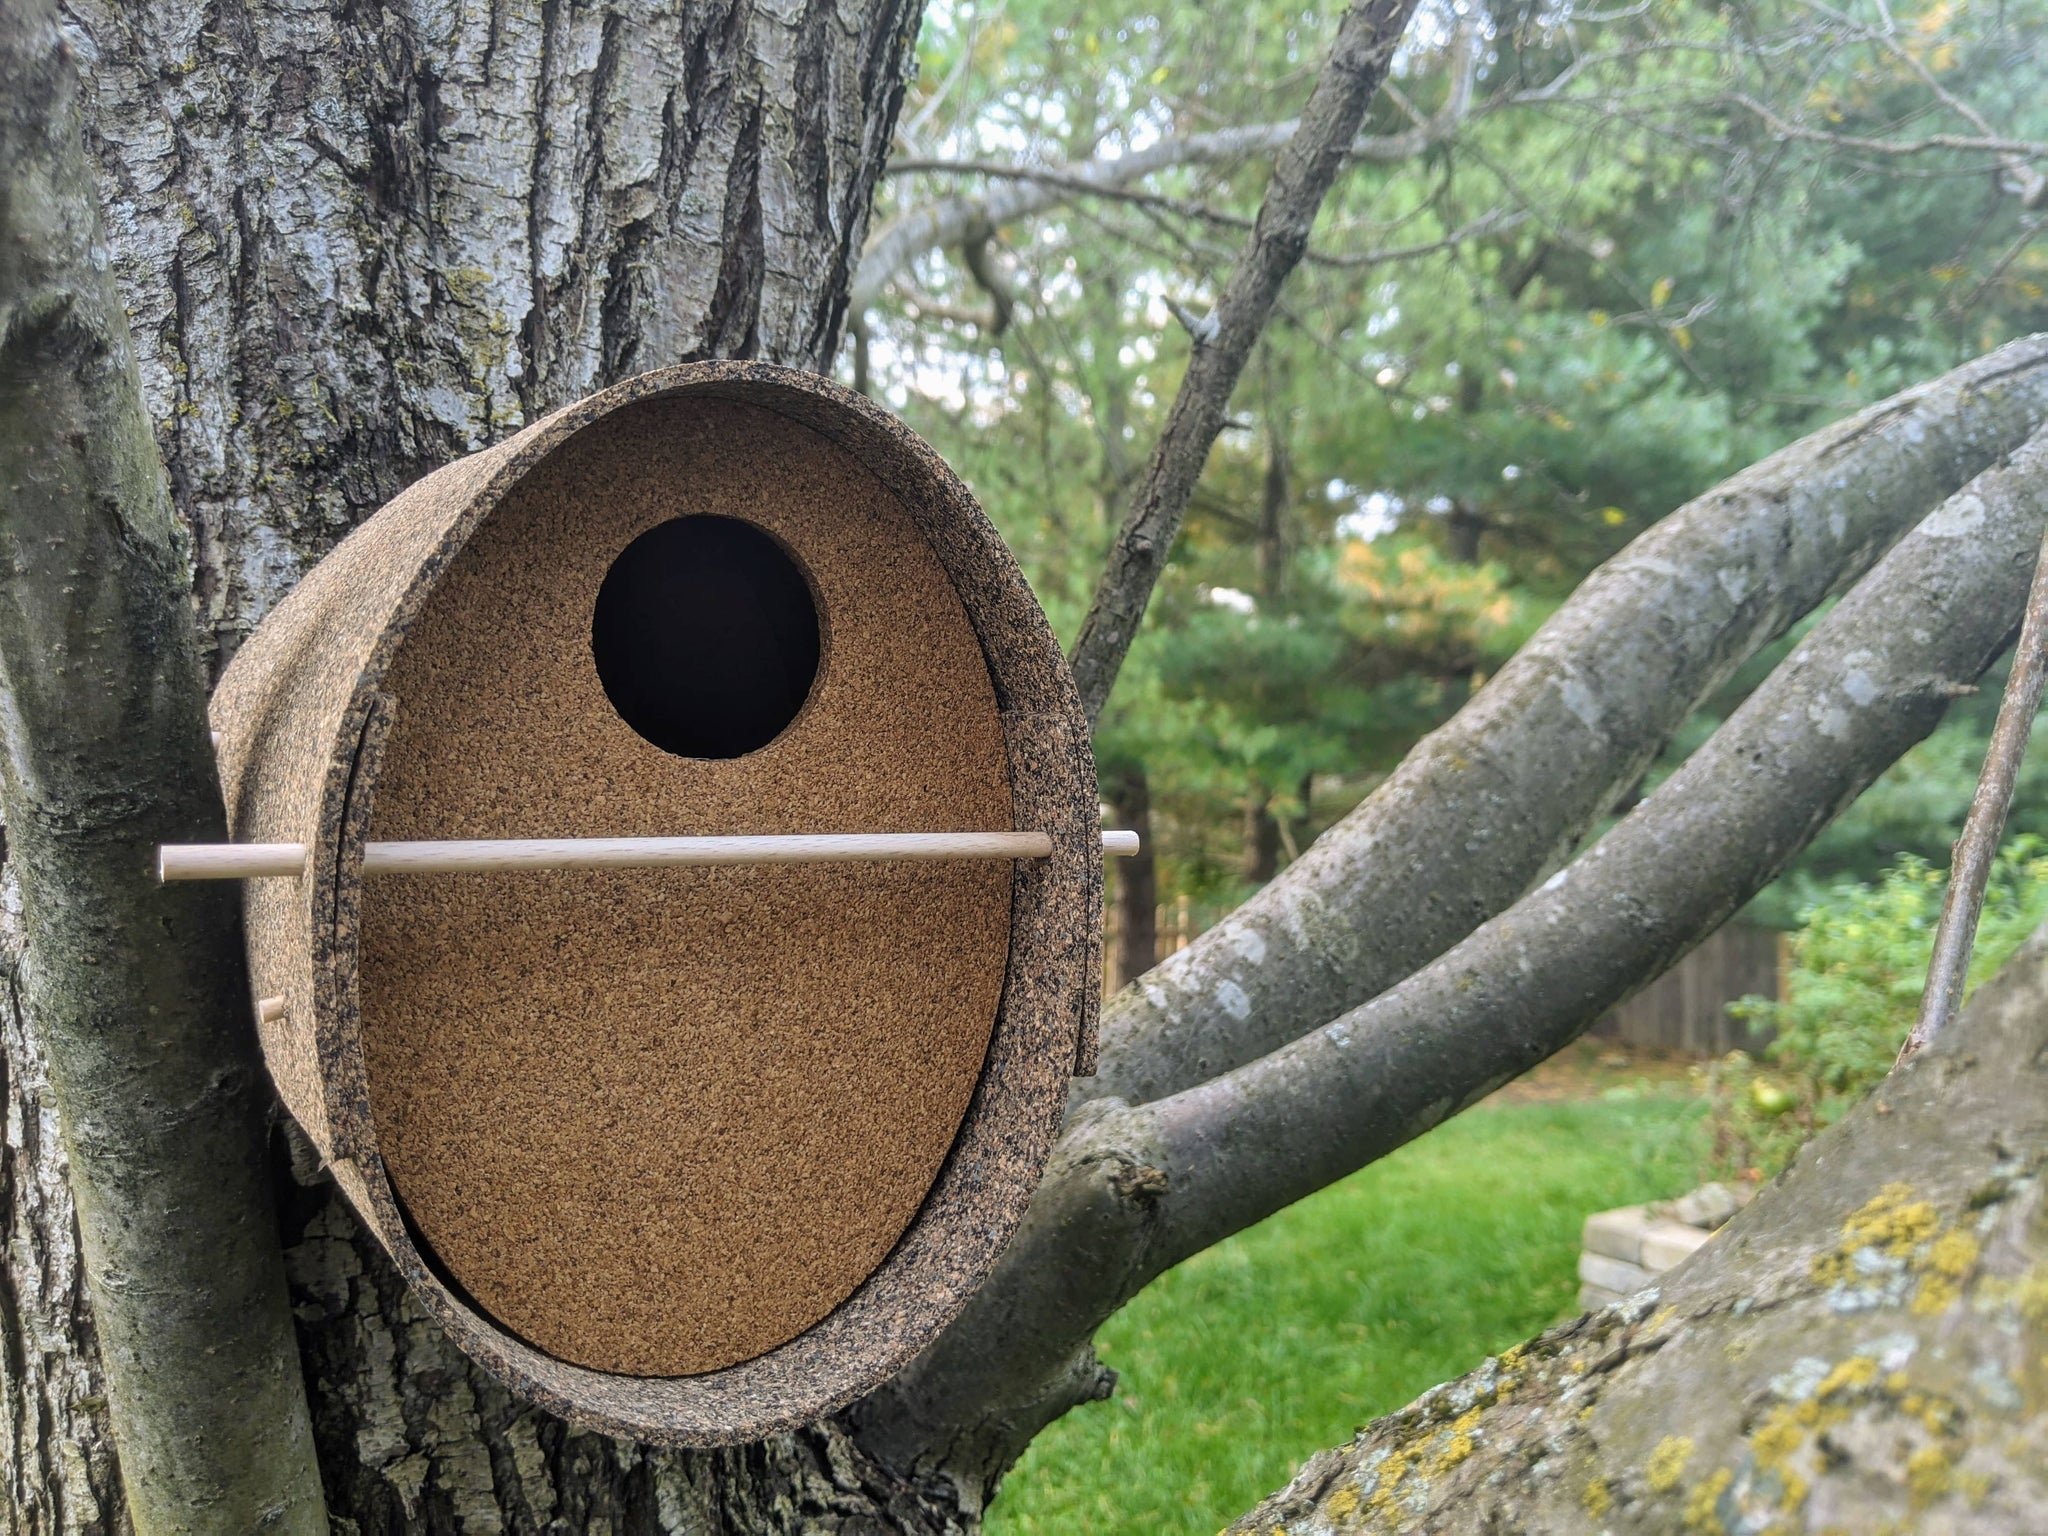 Bird House Guide (When, Where, Why, and How)